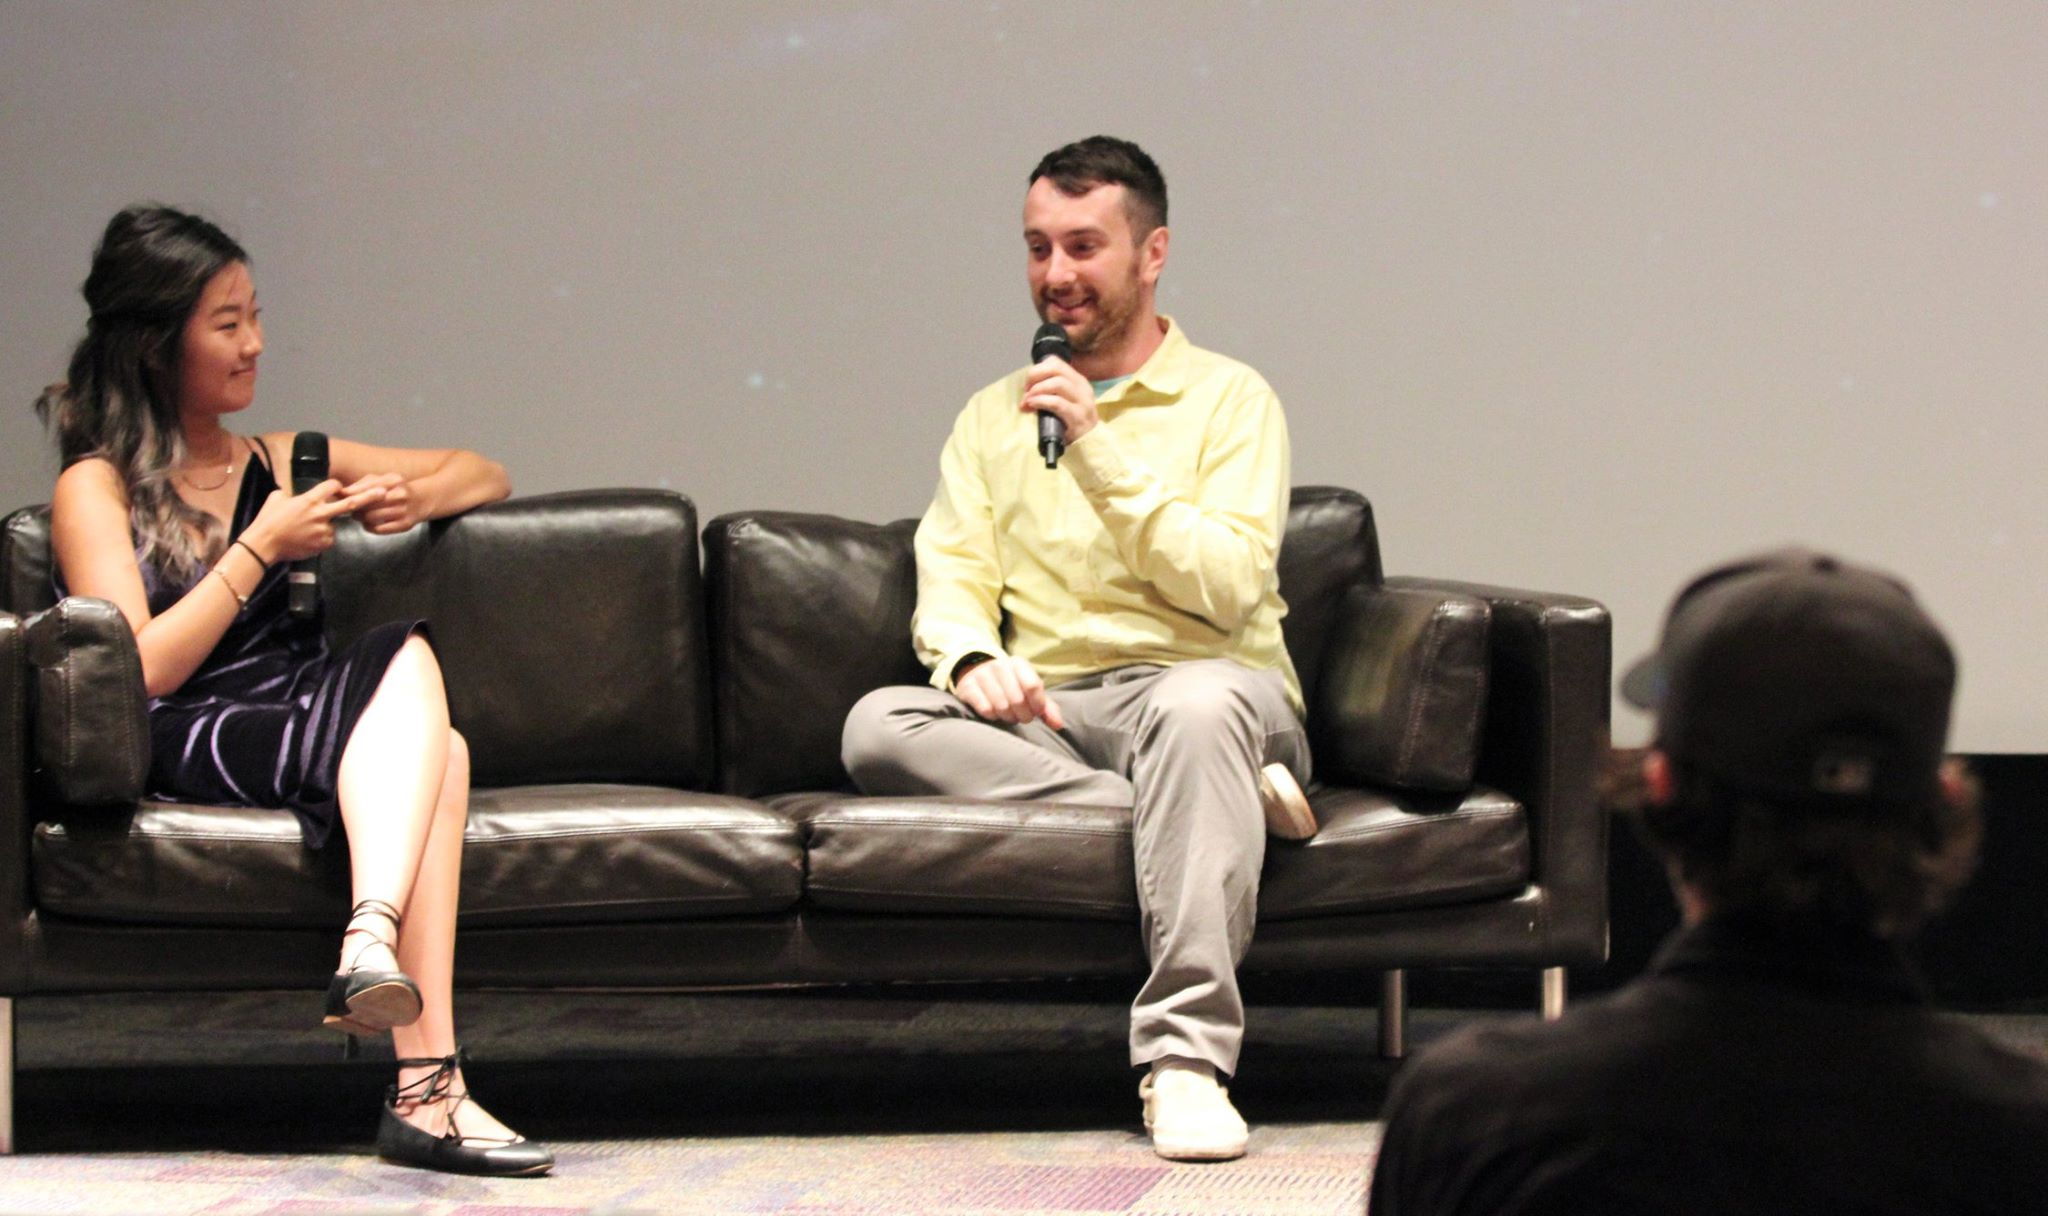 Kyle Empringham speaking at event while sitting on couch